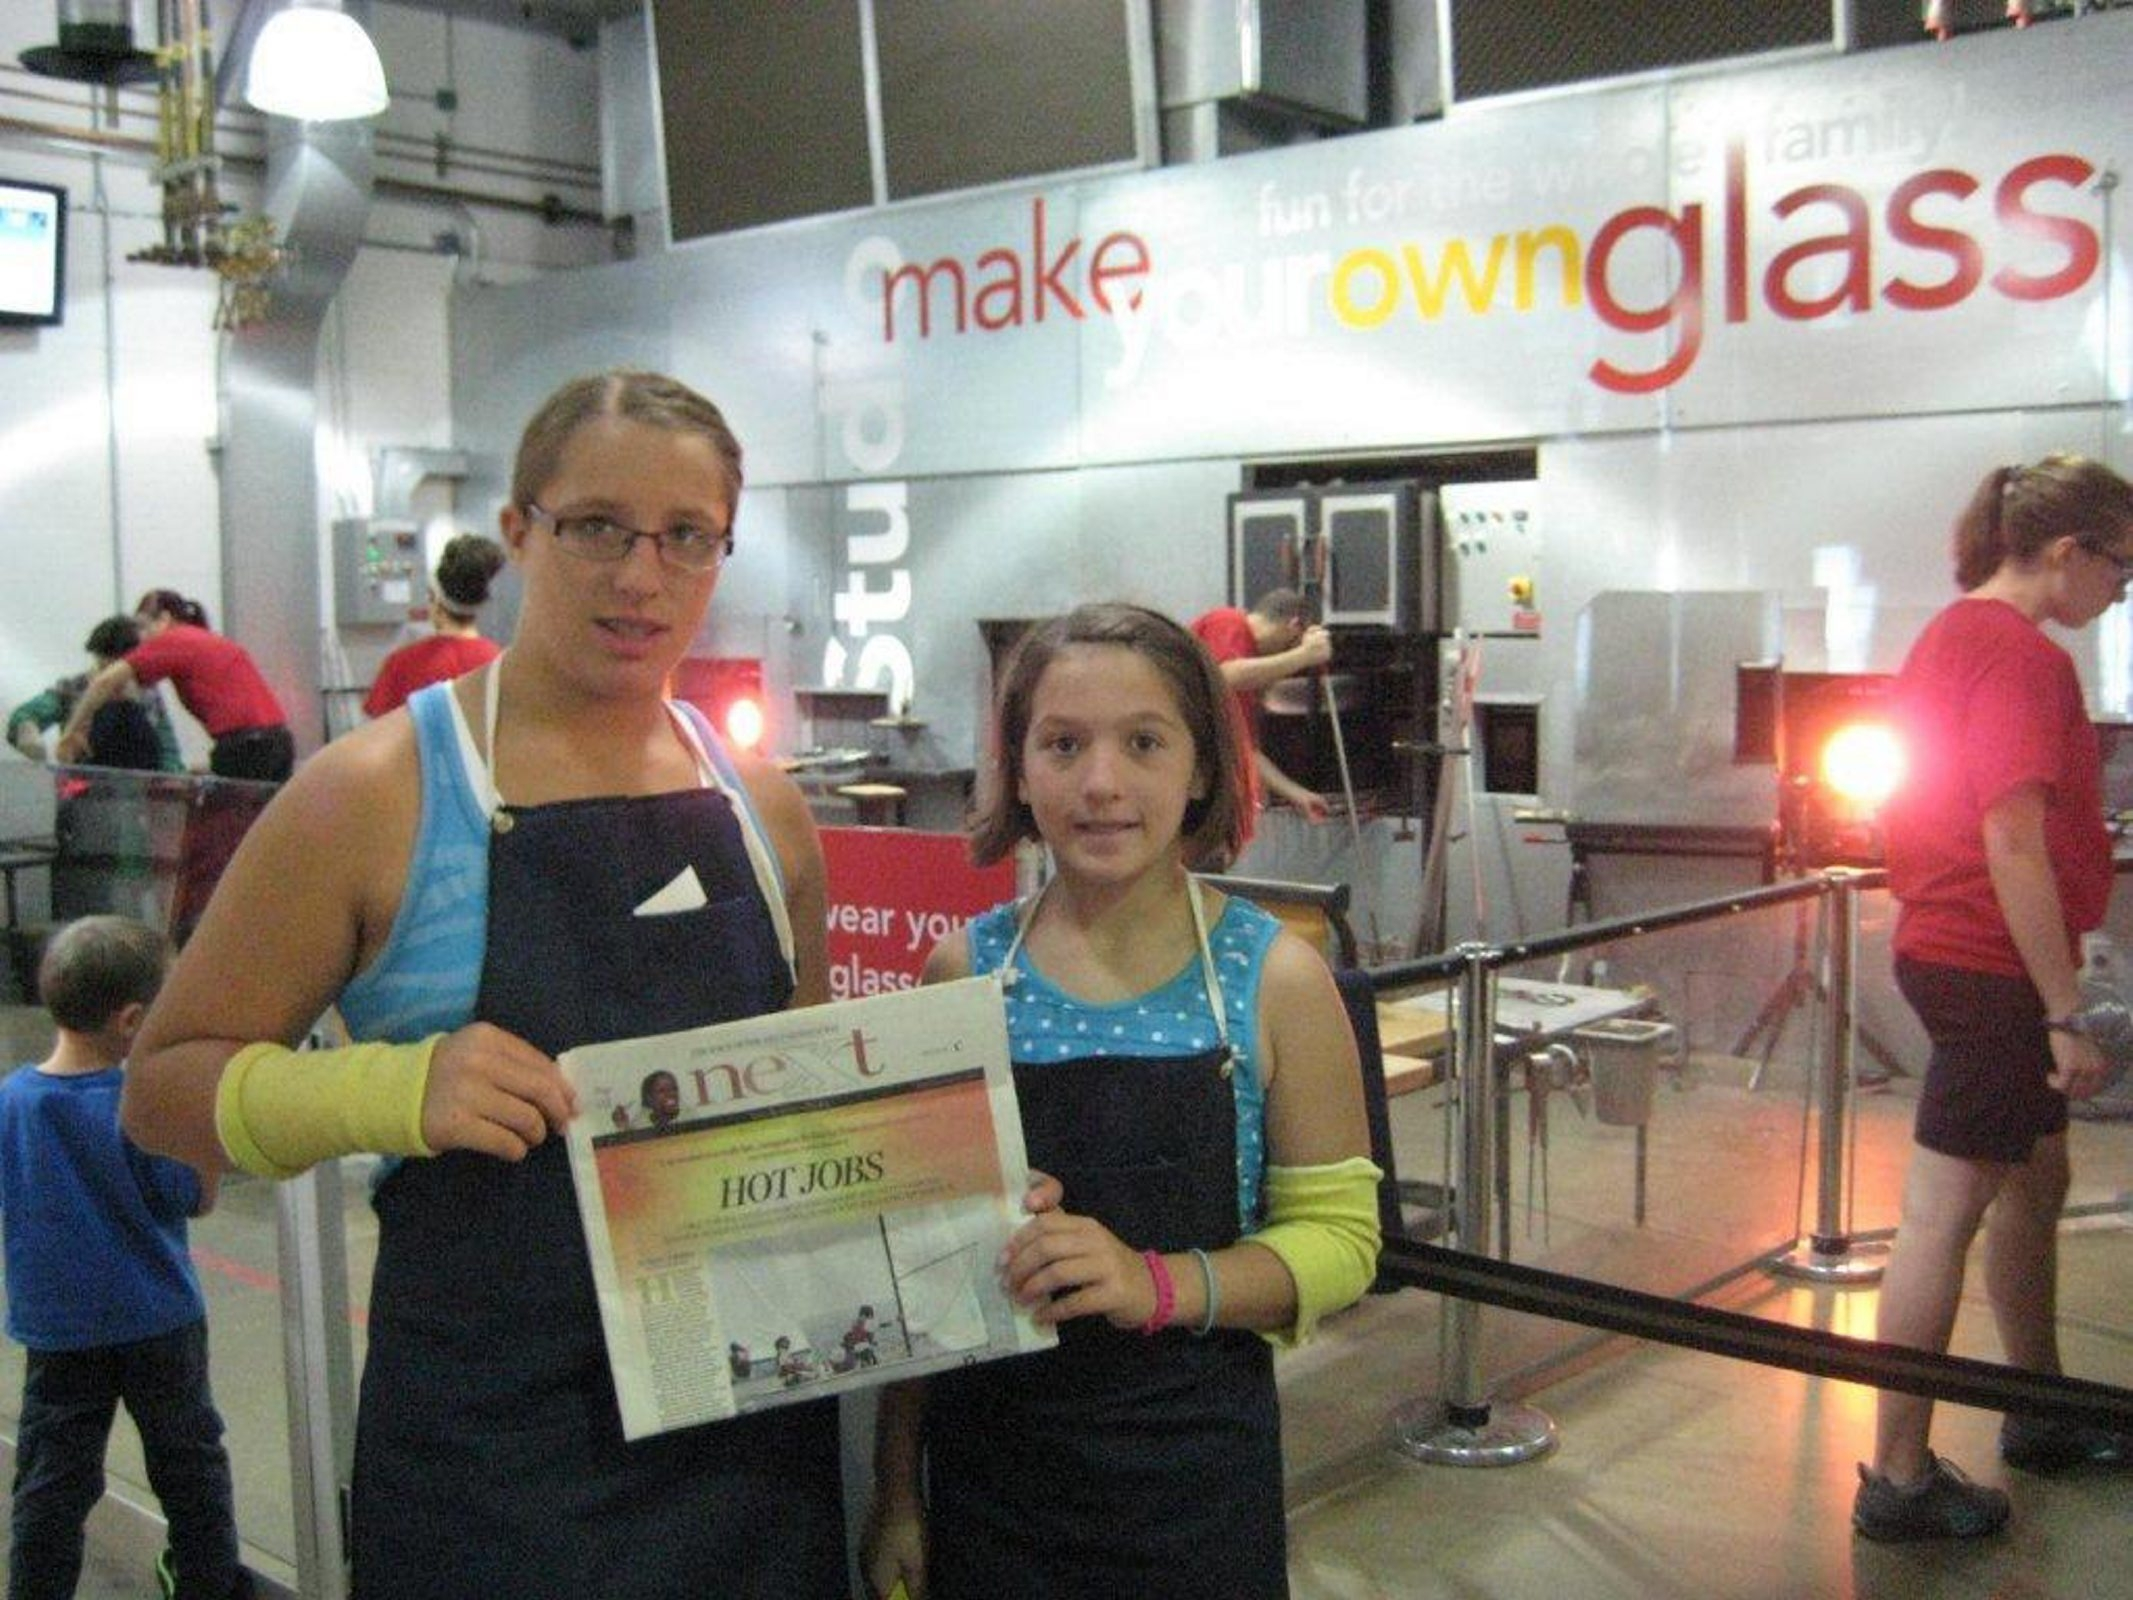 While camping in the Finger Lakes, Amber Carls, right, an eighth-grader, and her sister, Sarah, a seventh-grader at Edward Town Middle School in the Niagara Wheatfield School District, took NeXt along on a day trip to a glass-making class in Corning.